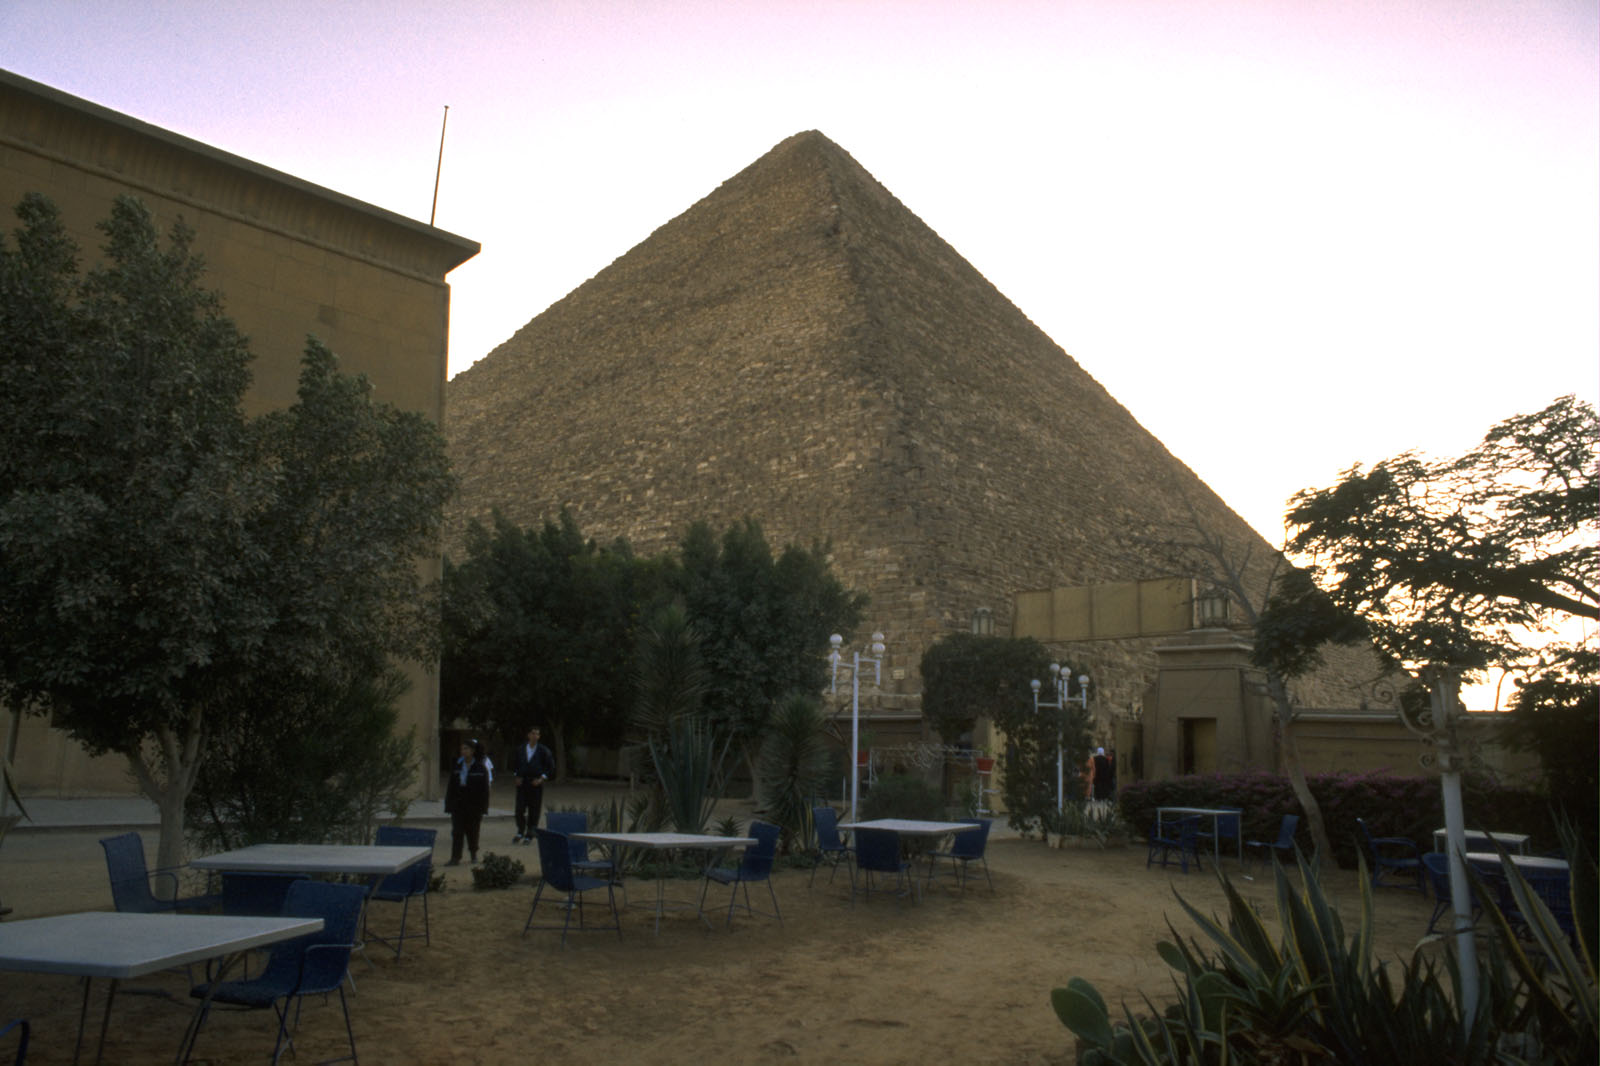 People & places: Site: Giza; View: Farouk rest-house, Khufu pyramid